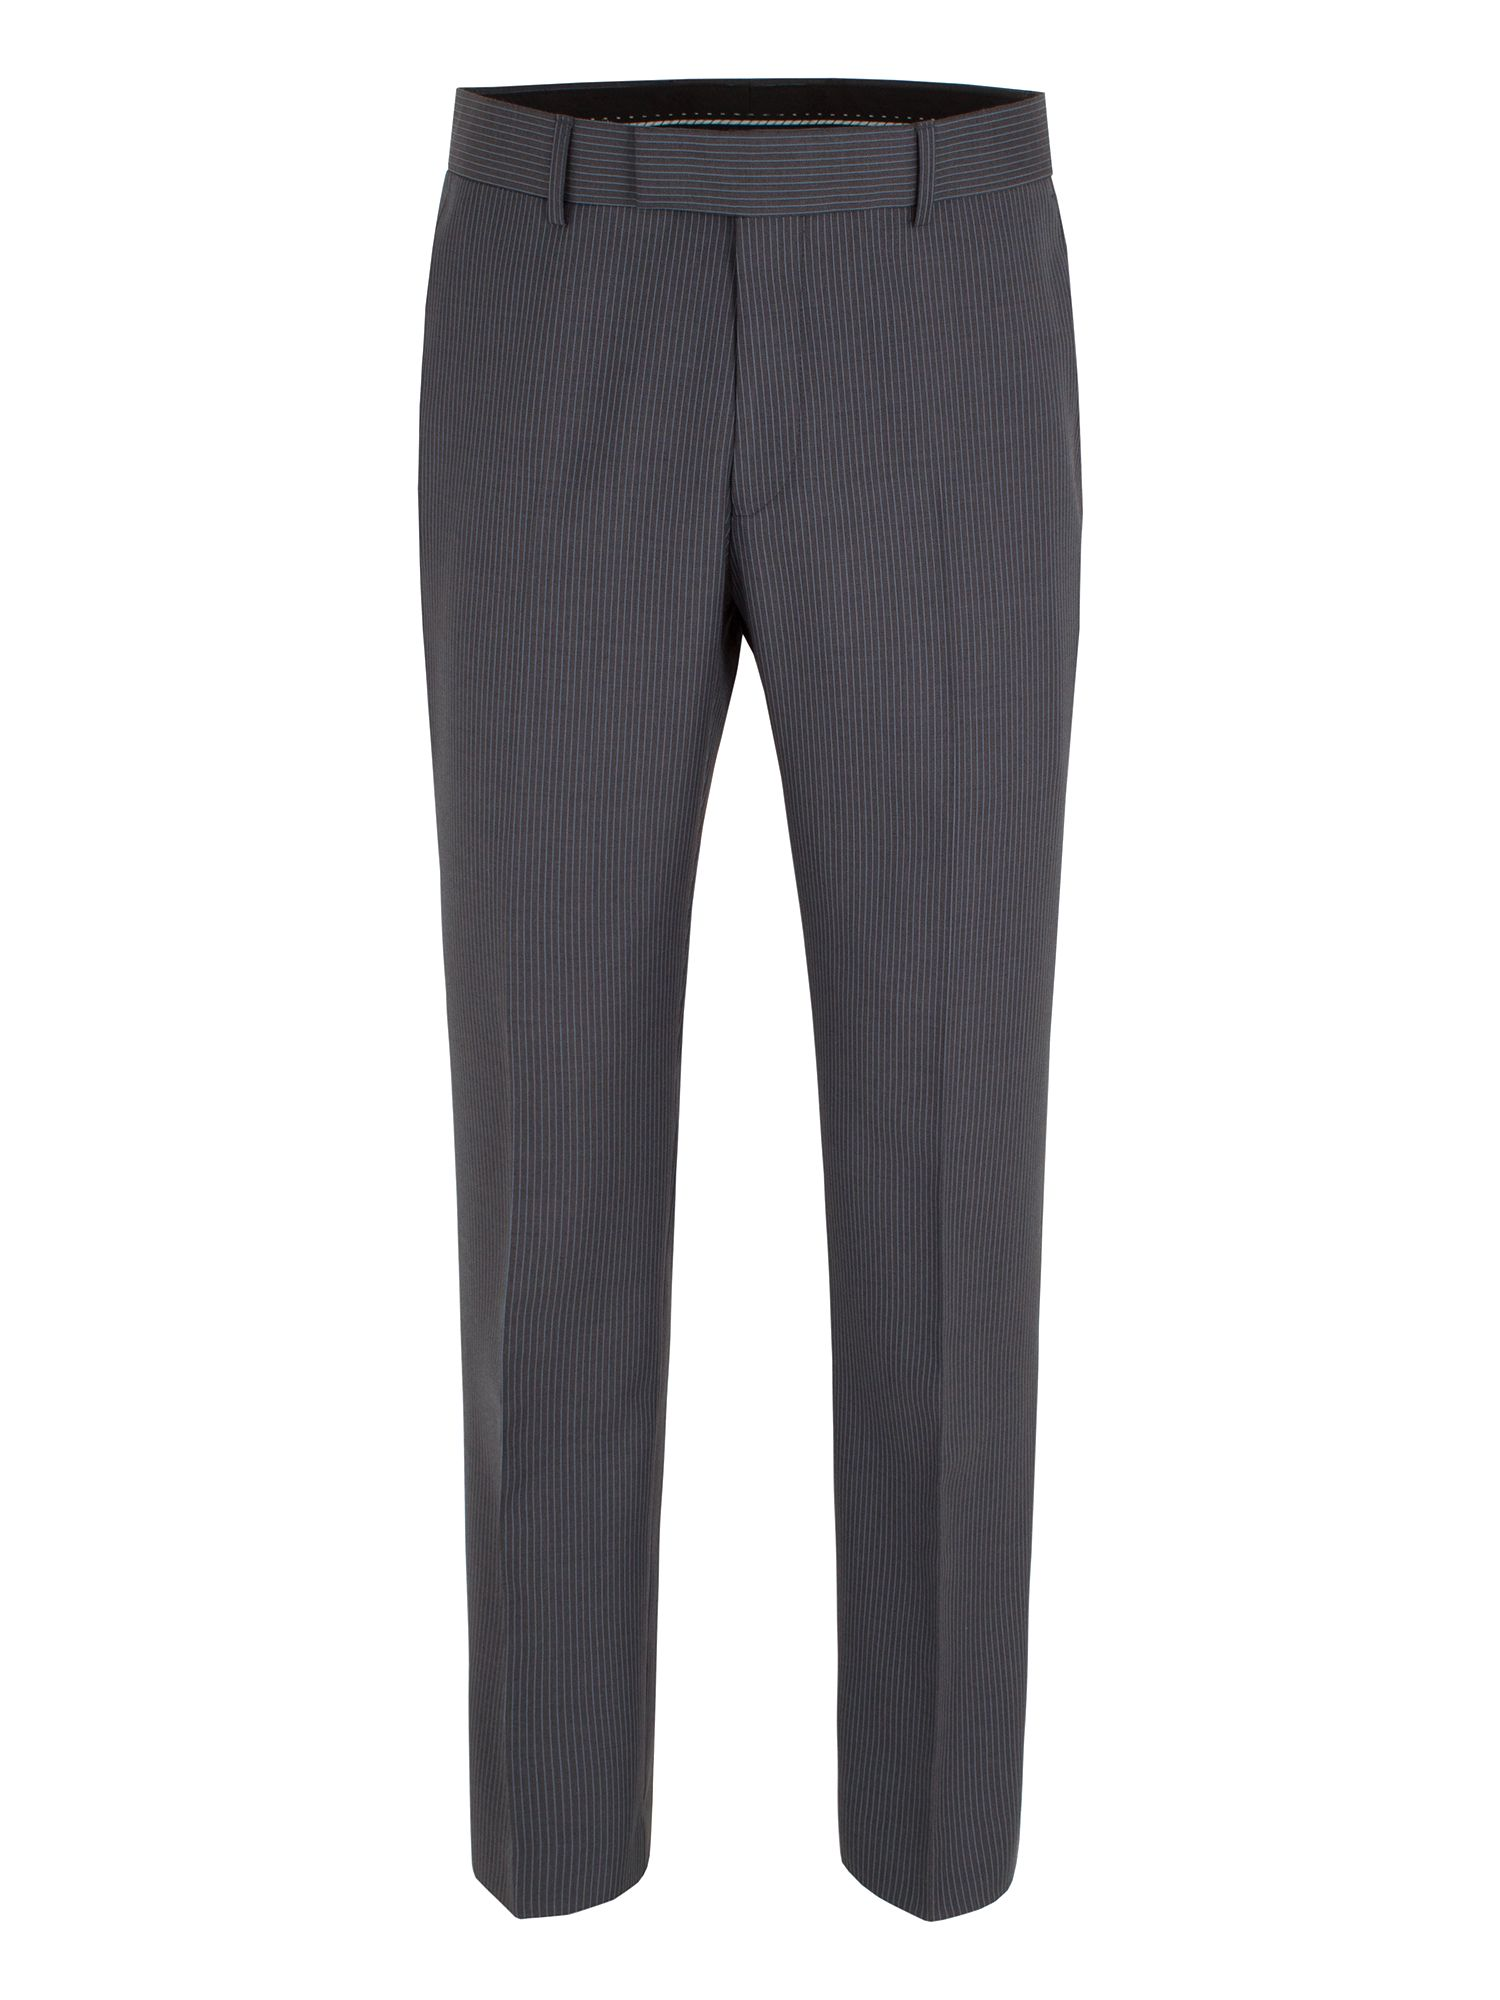 Grey blue stripe trouser